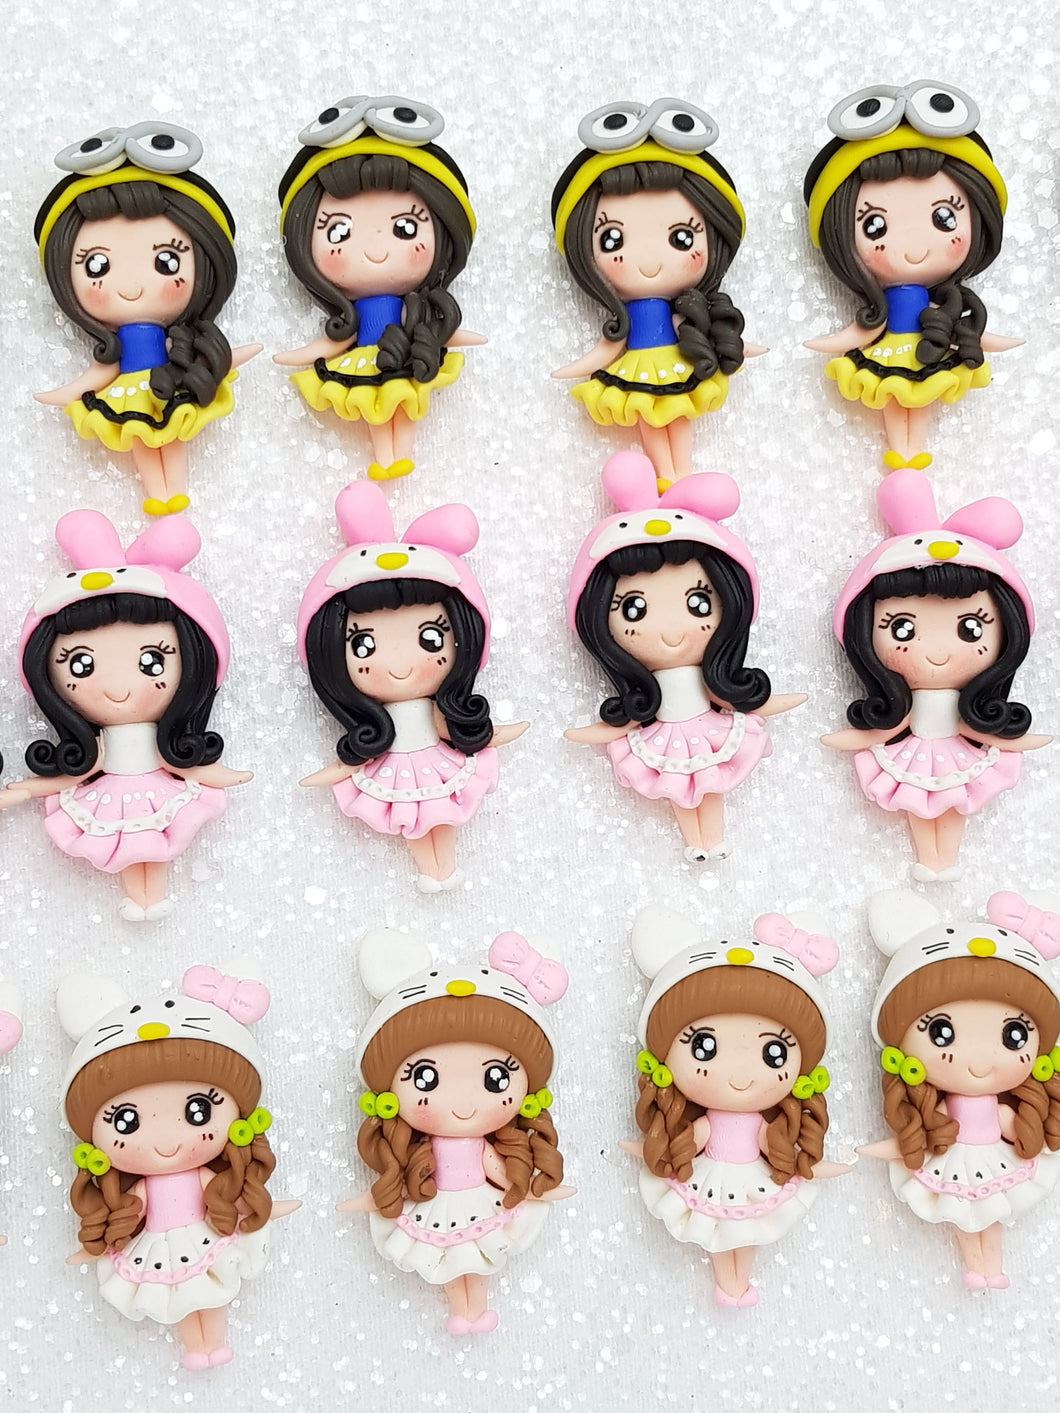 Clay Charm Embellishment New dressing up girl spu - Crafty Mood